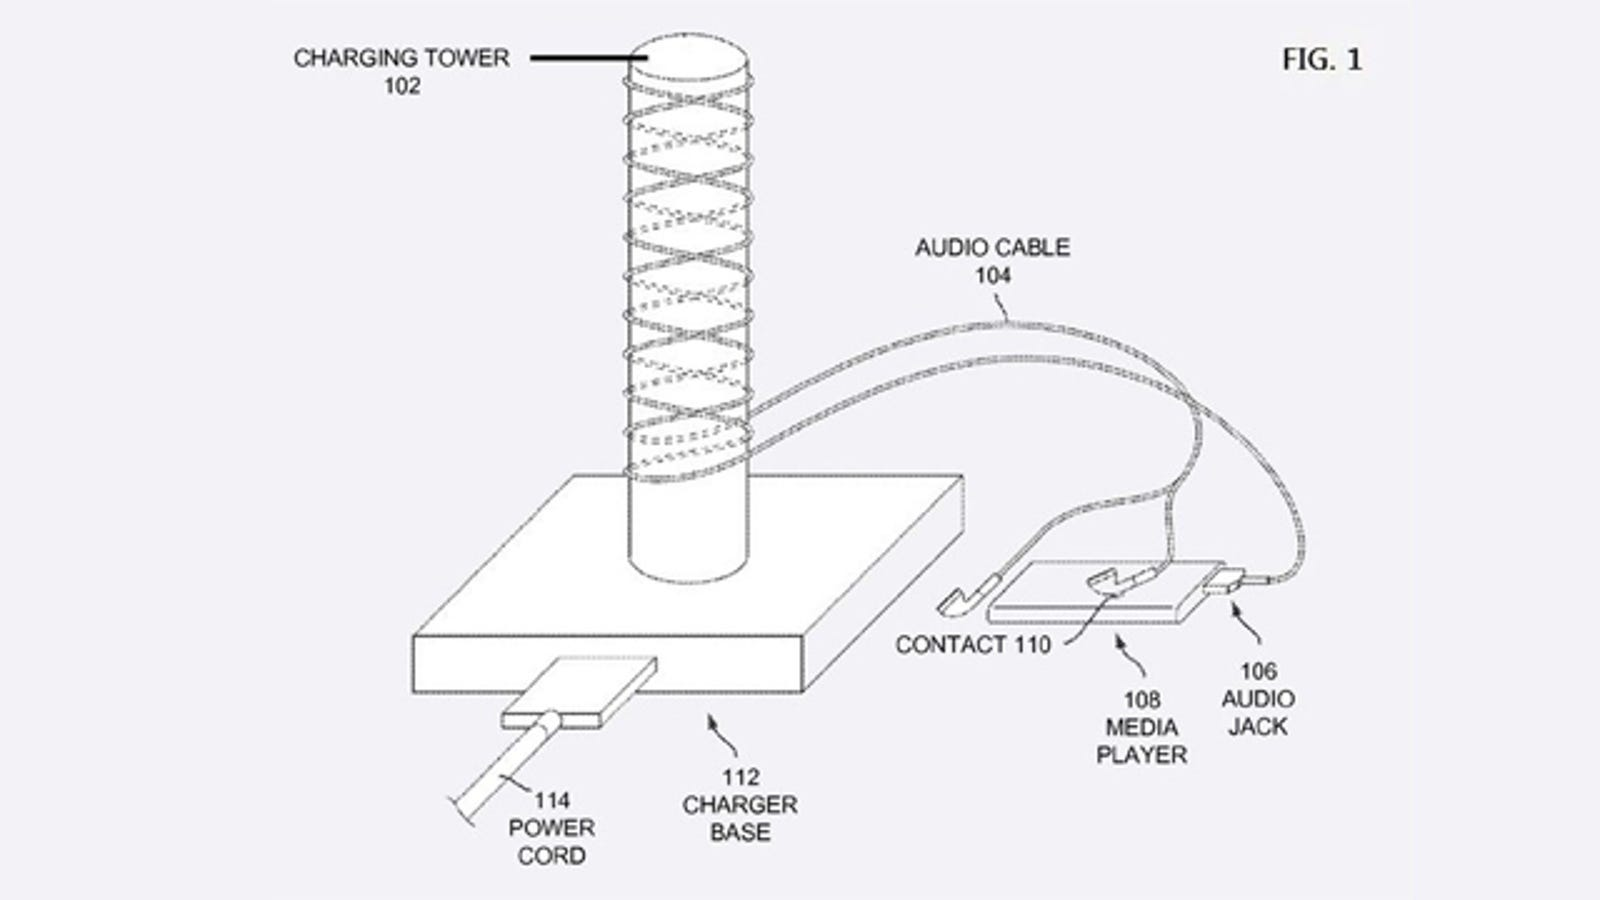 ear buds uncantessed - Why Apple's Inductive Charging Patent For iPhones Is a Red Herring